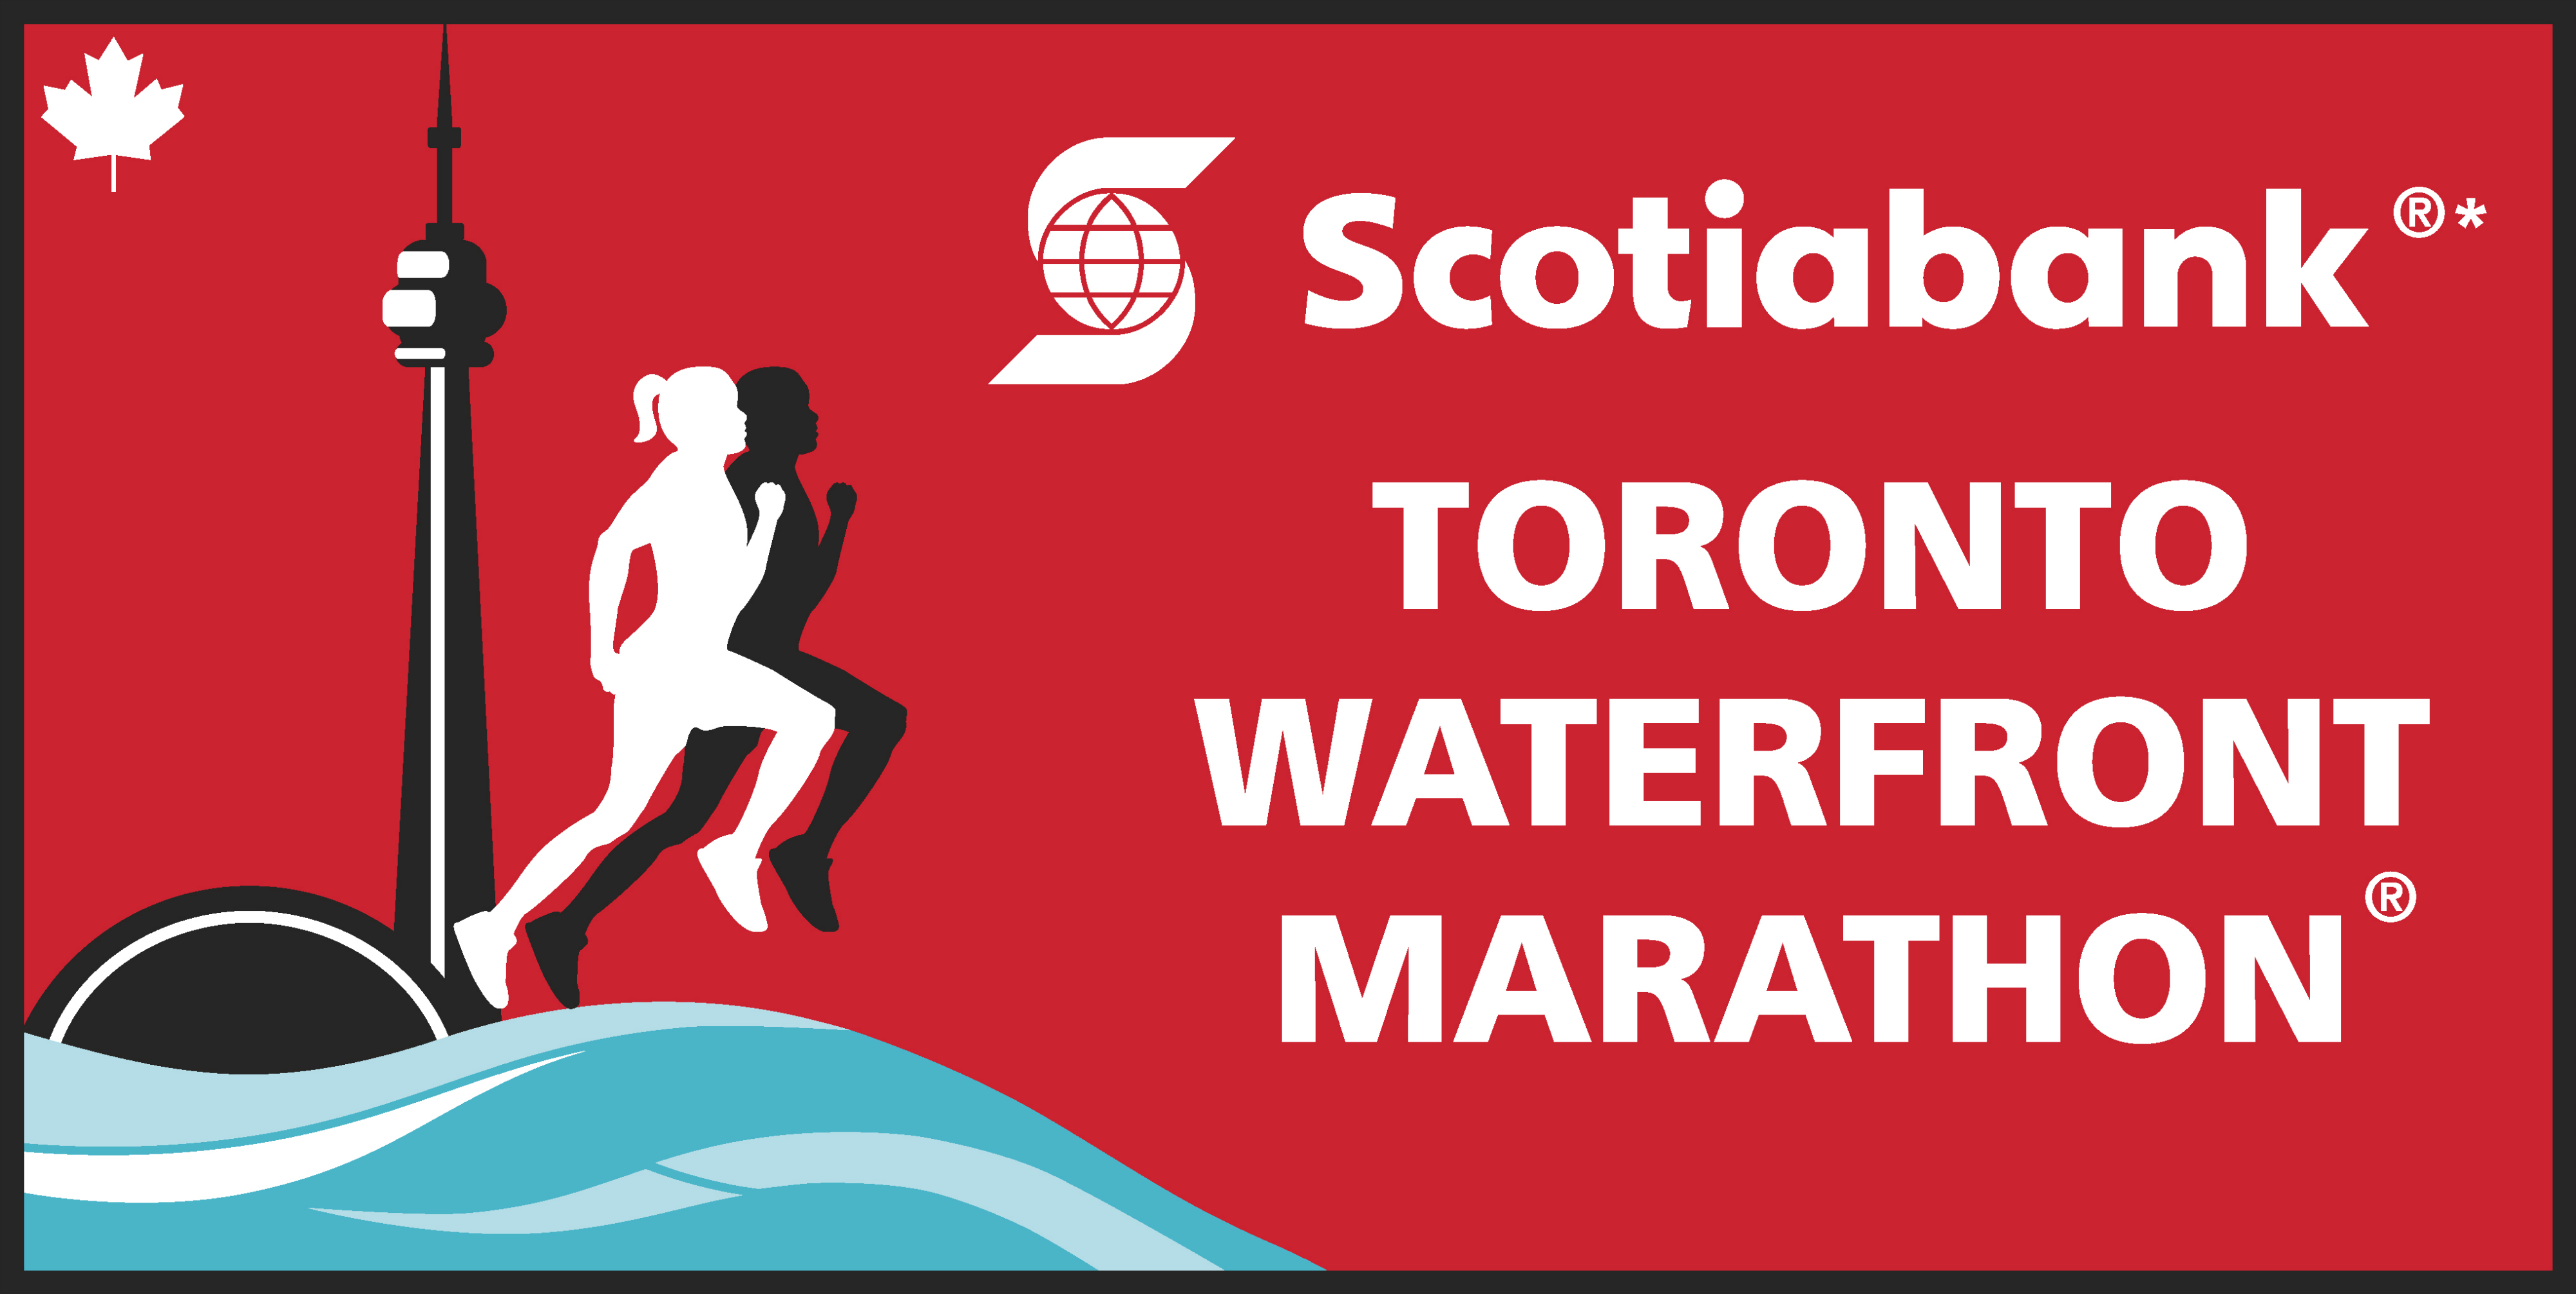 Scotiabank TO Waterfront Marathon